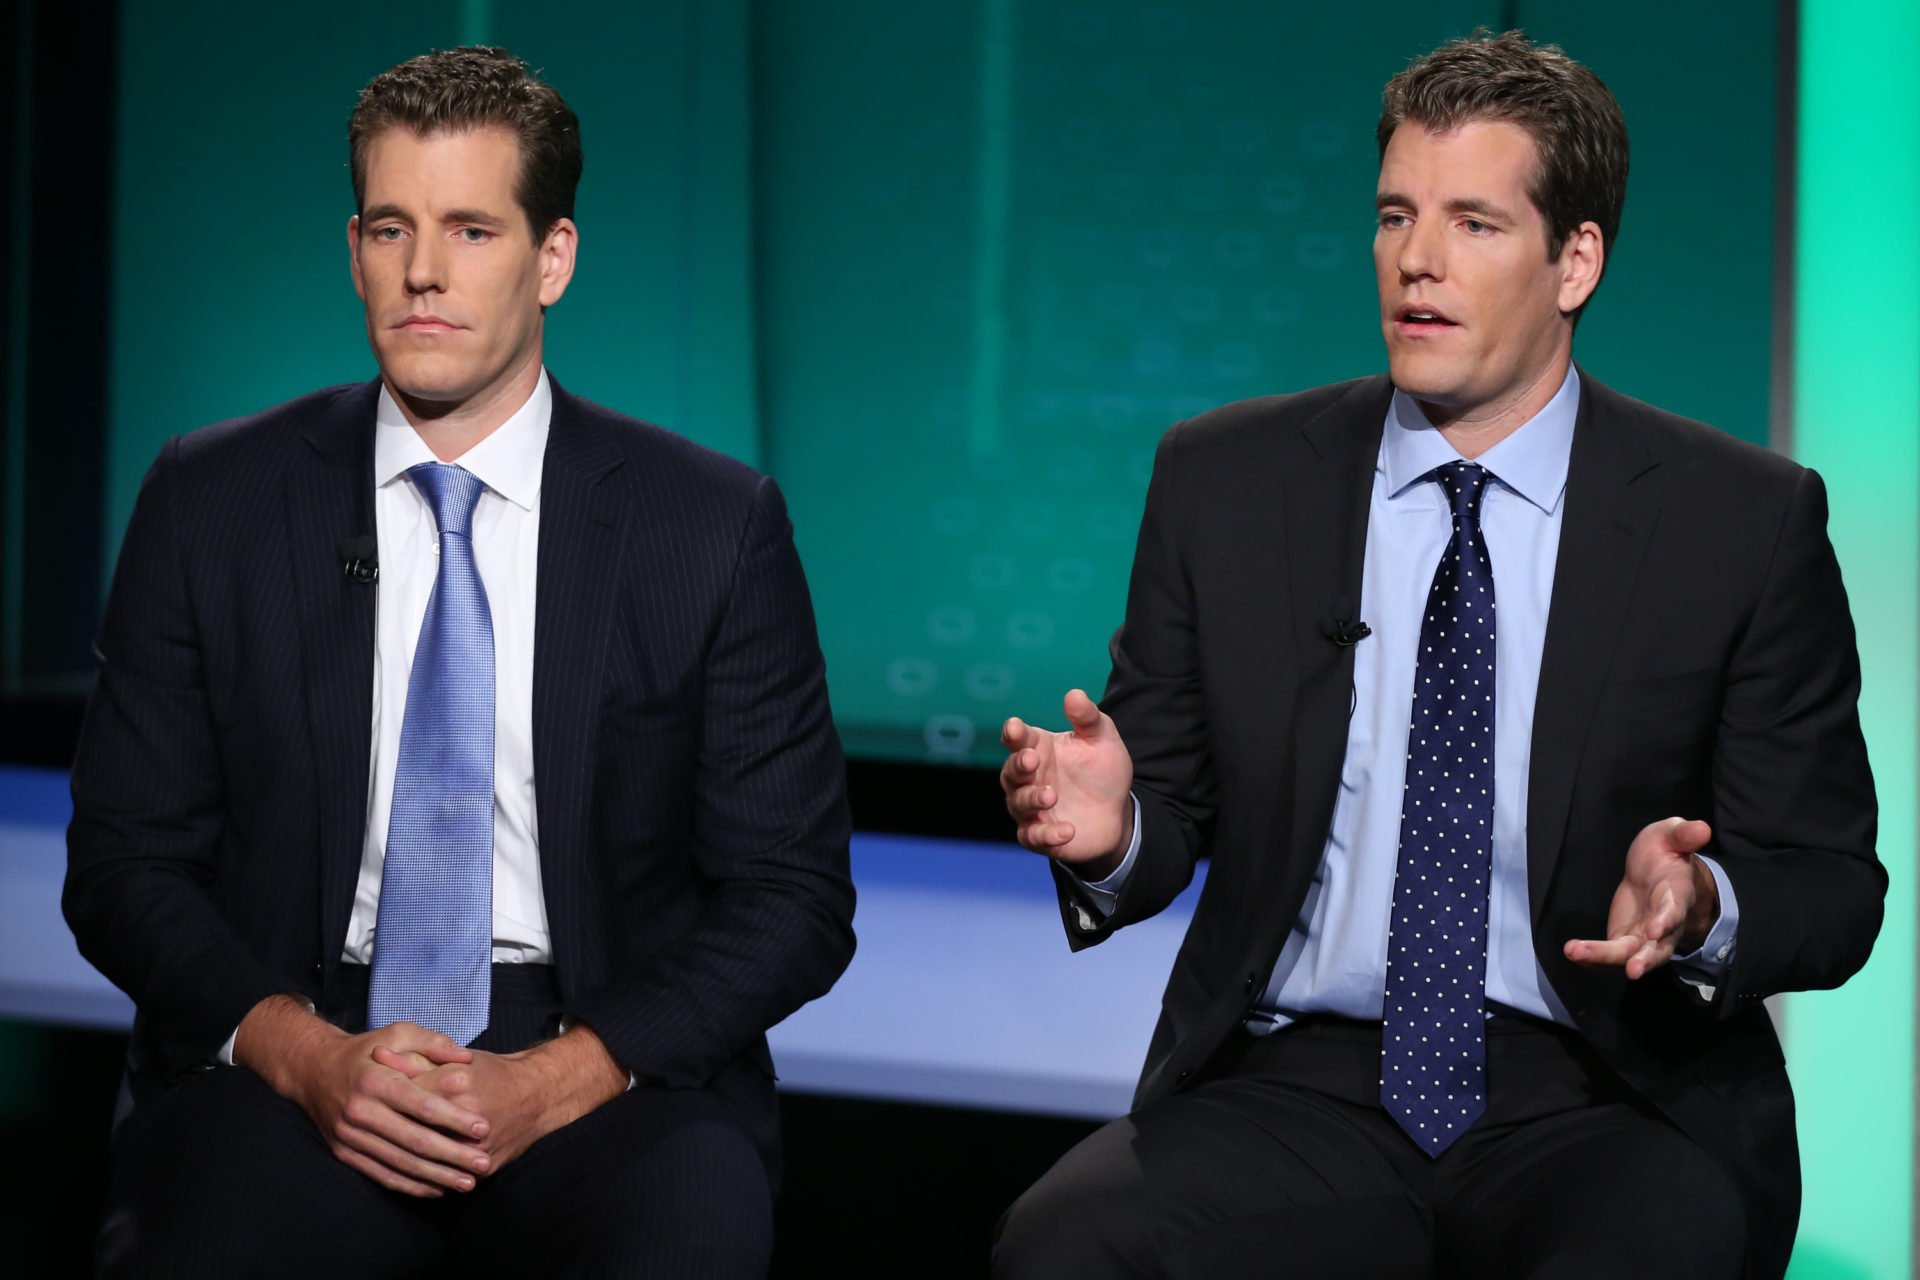 Winklevoss Twins 'donated' $130,000 to New York Governor prior to License Granting 13